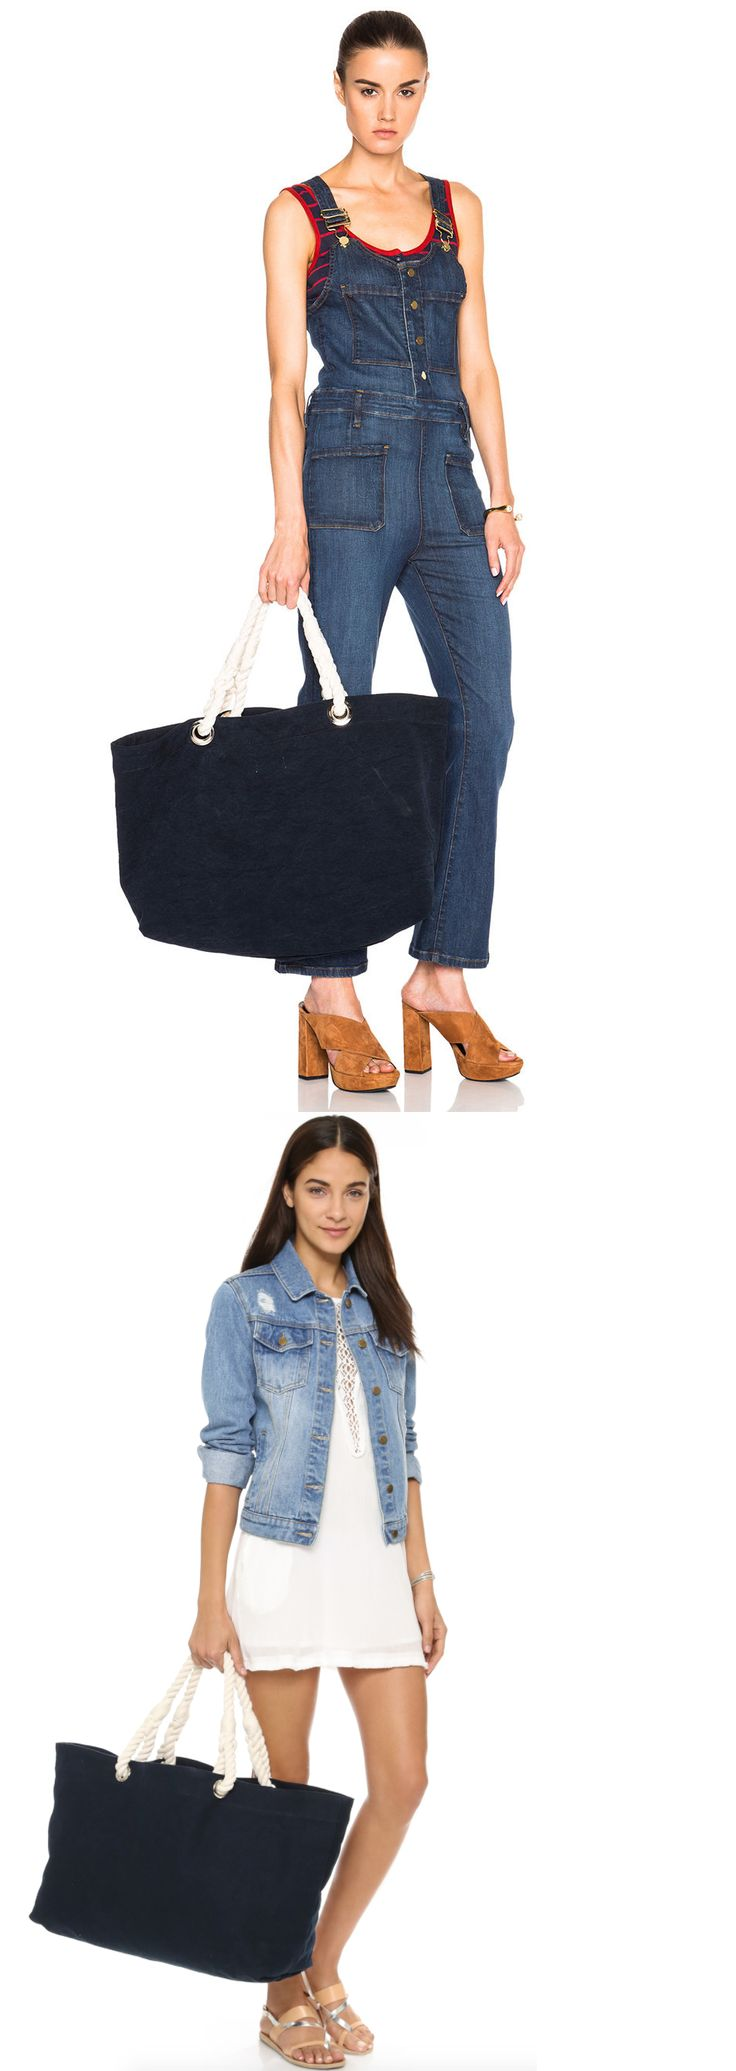 Reusable Eco Bags 169302: Frame Denim Le Canvas Beach Bag Tote W Rope Handles Navy Blue And White $265 -> BUY IT NOW ONLY: $39 on eBay!